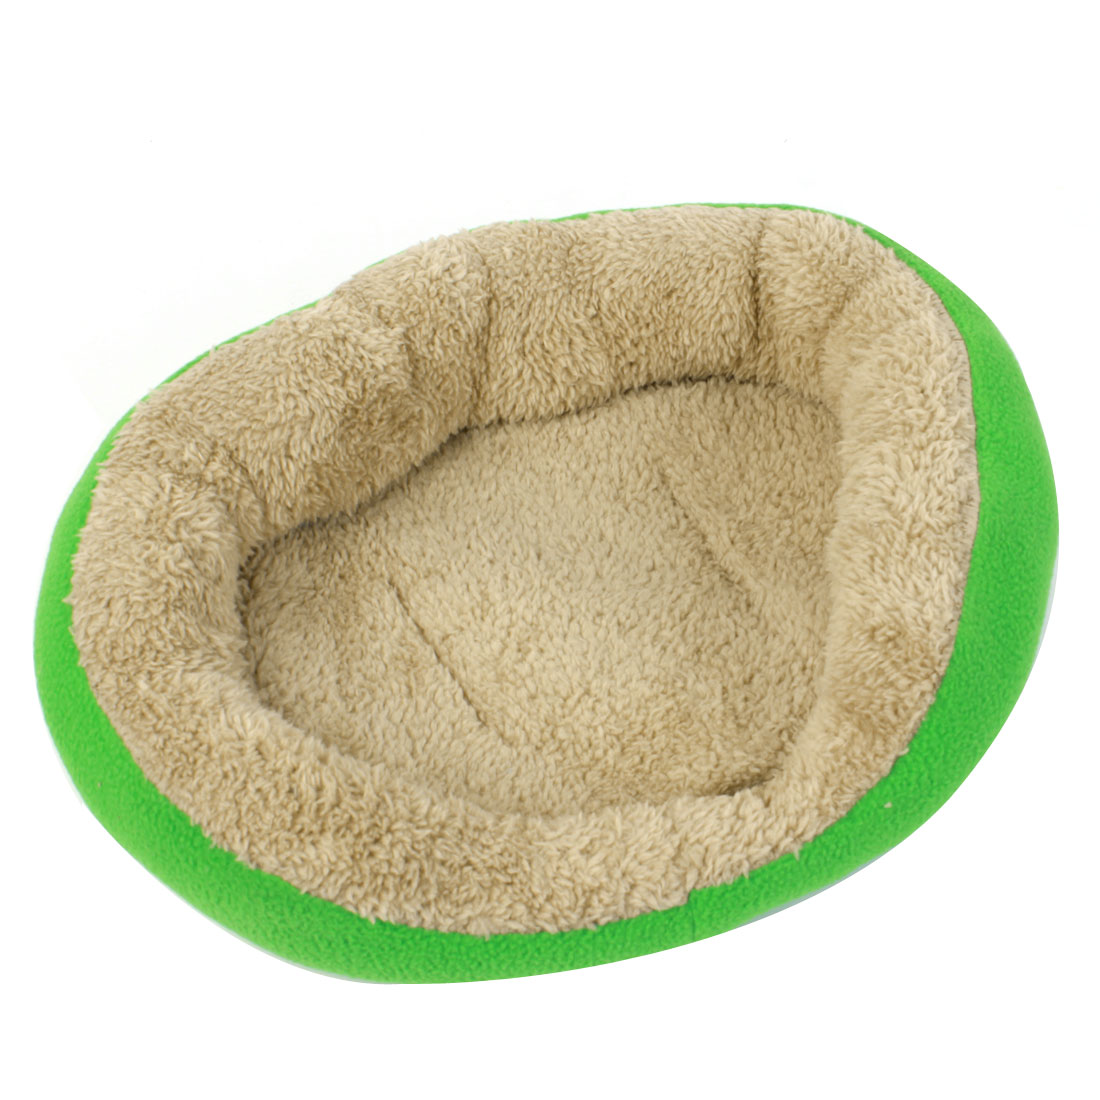 Green Beige Sleeping Warm Plush Mat Pet Dog Doggy Doghouse Kennel Pad